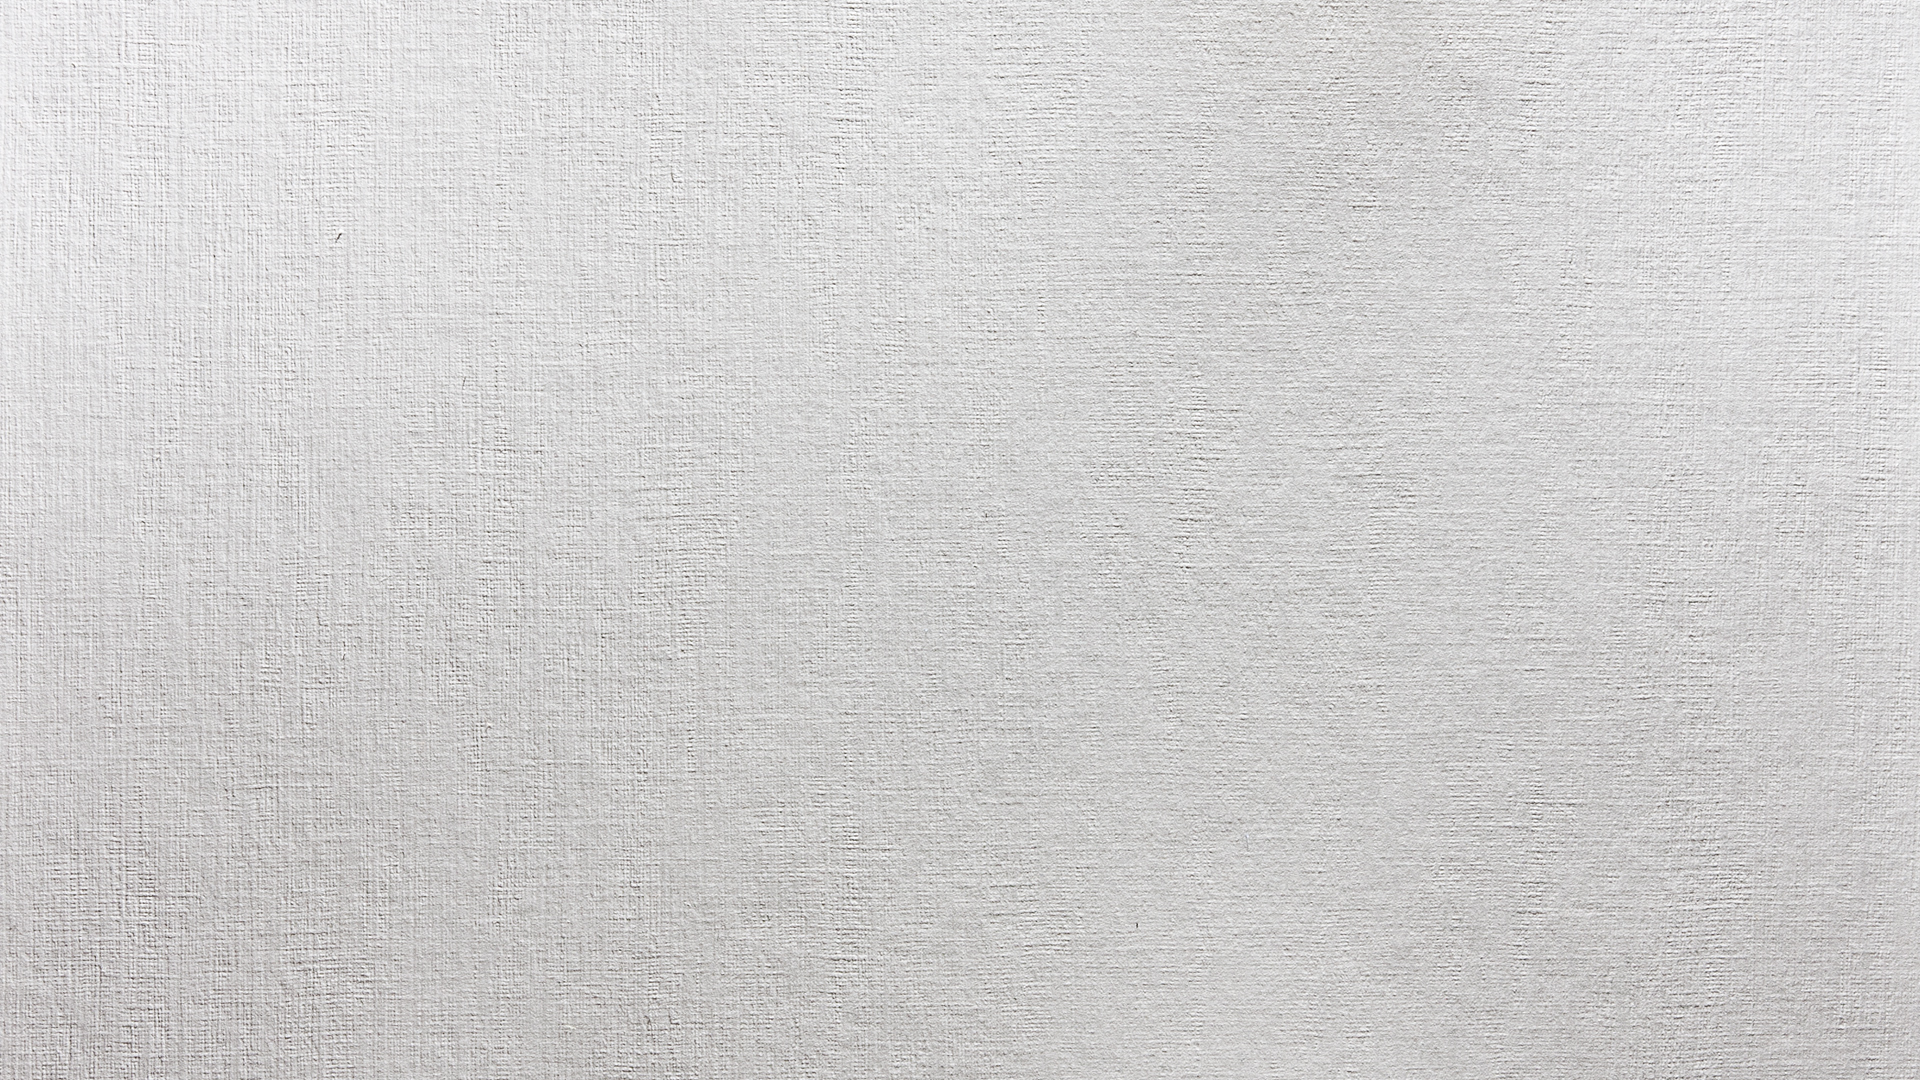 Background image texture - Natural Paper Background Texture Hd 5a0b